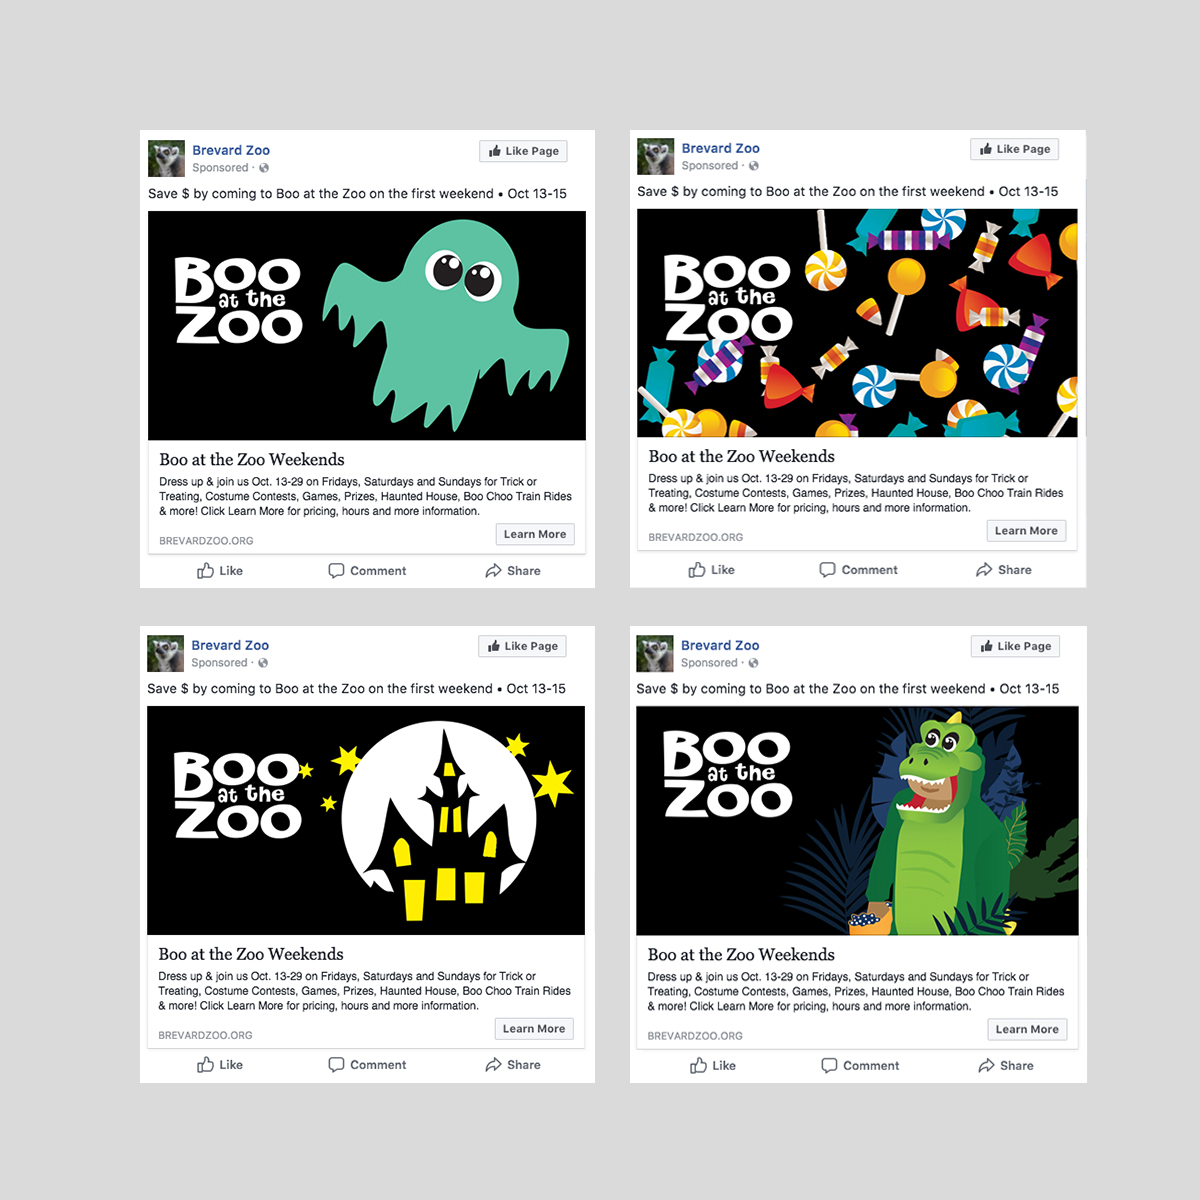 boo at the zoo digital ads